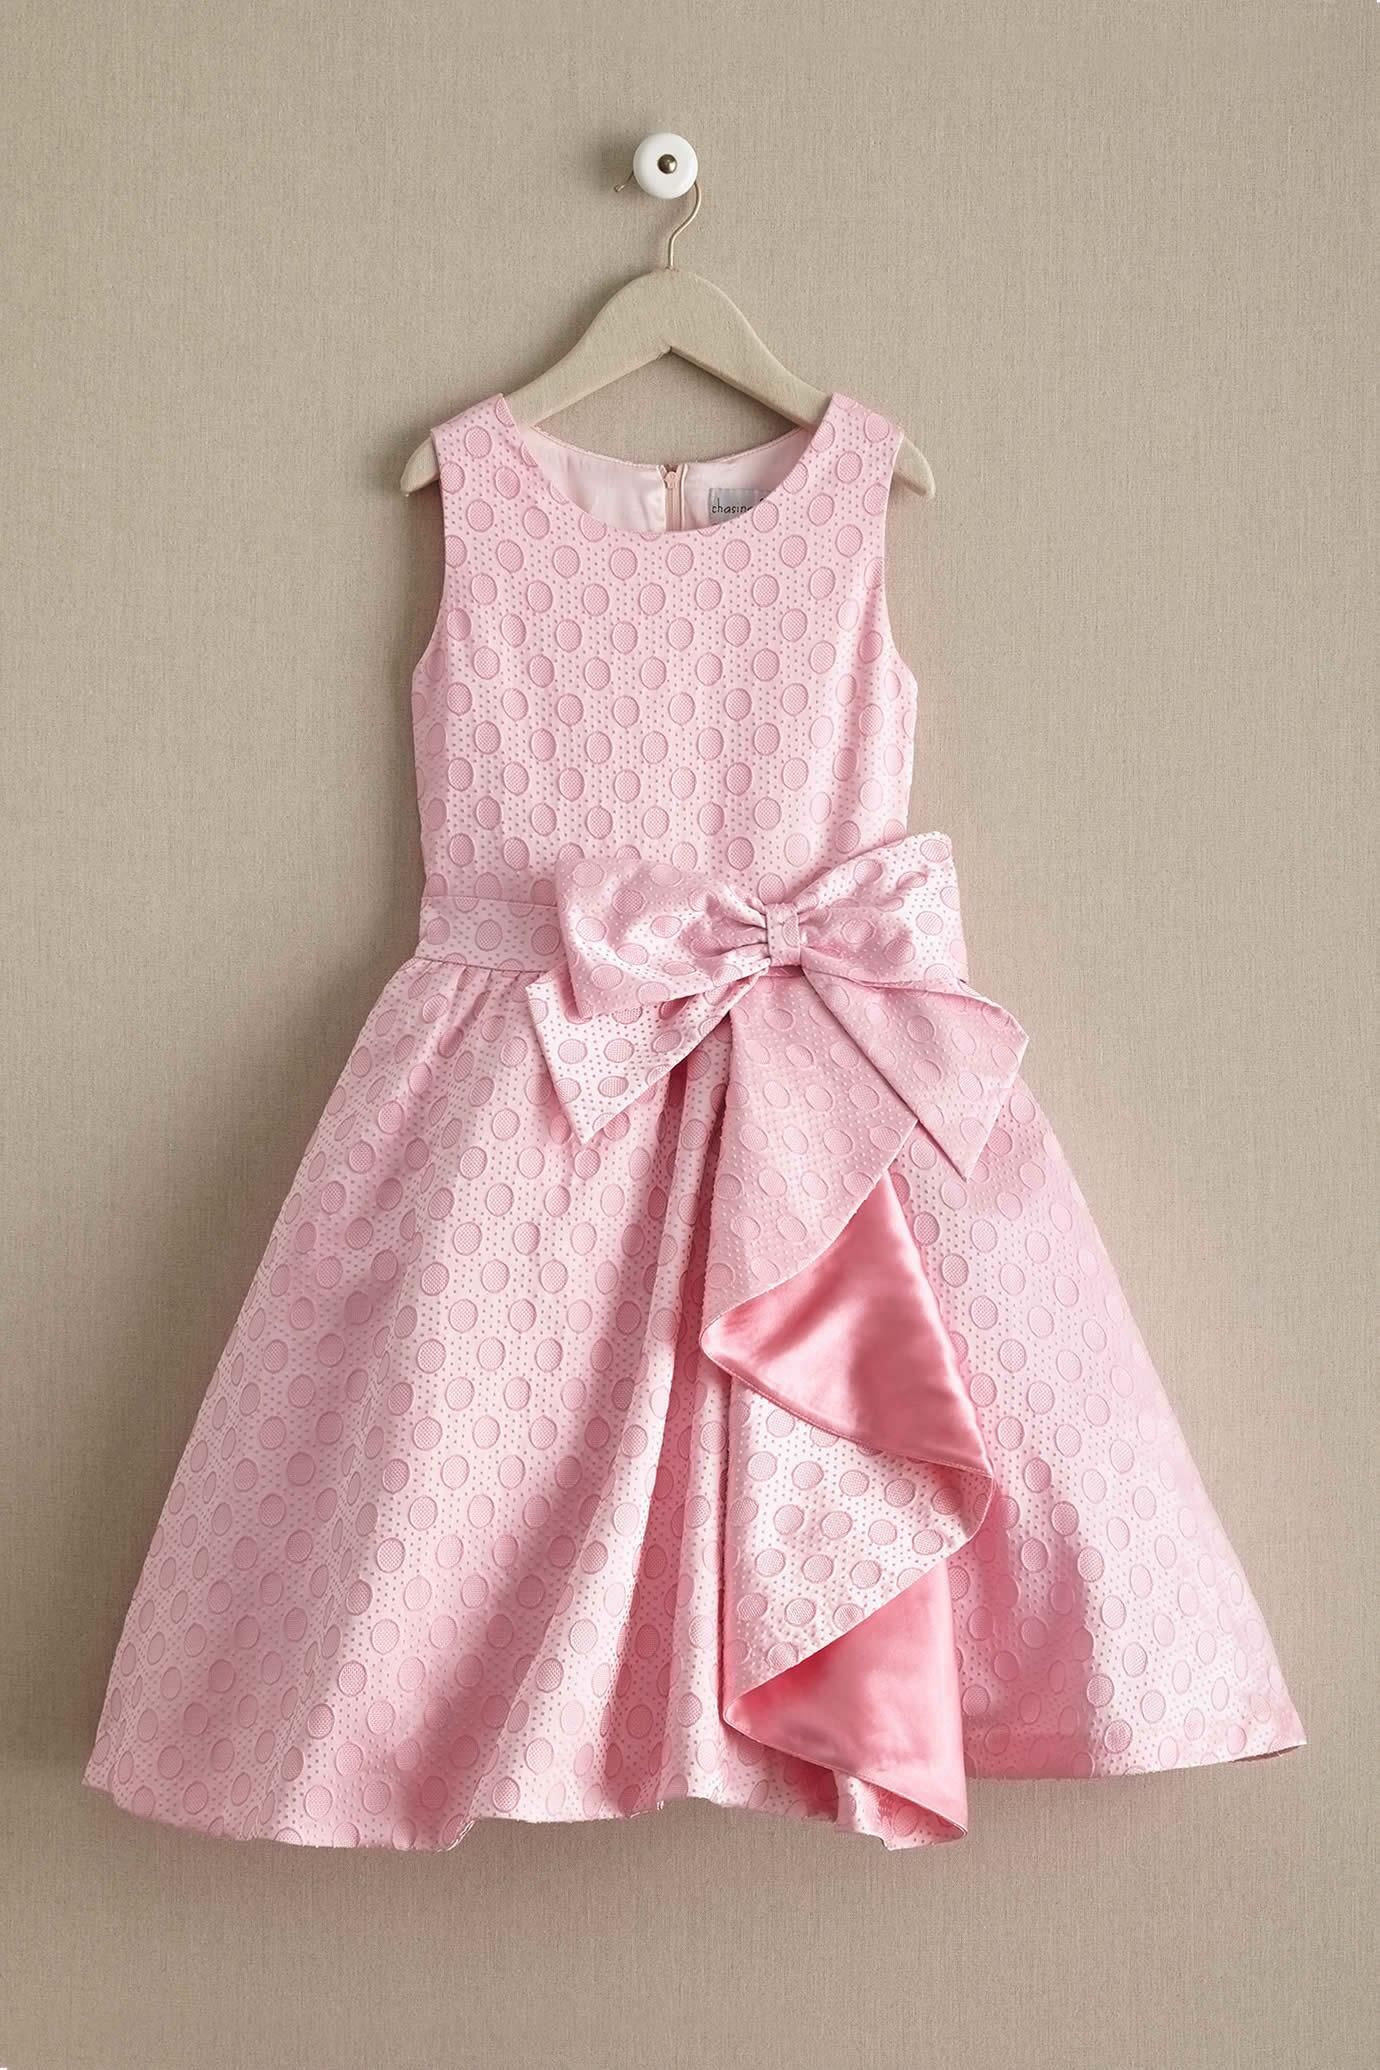 9b1927e3e Girls Cascading Ruffle Dress: #Chasingfireflies $139.00 | American ...